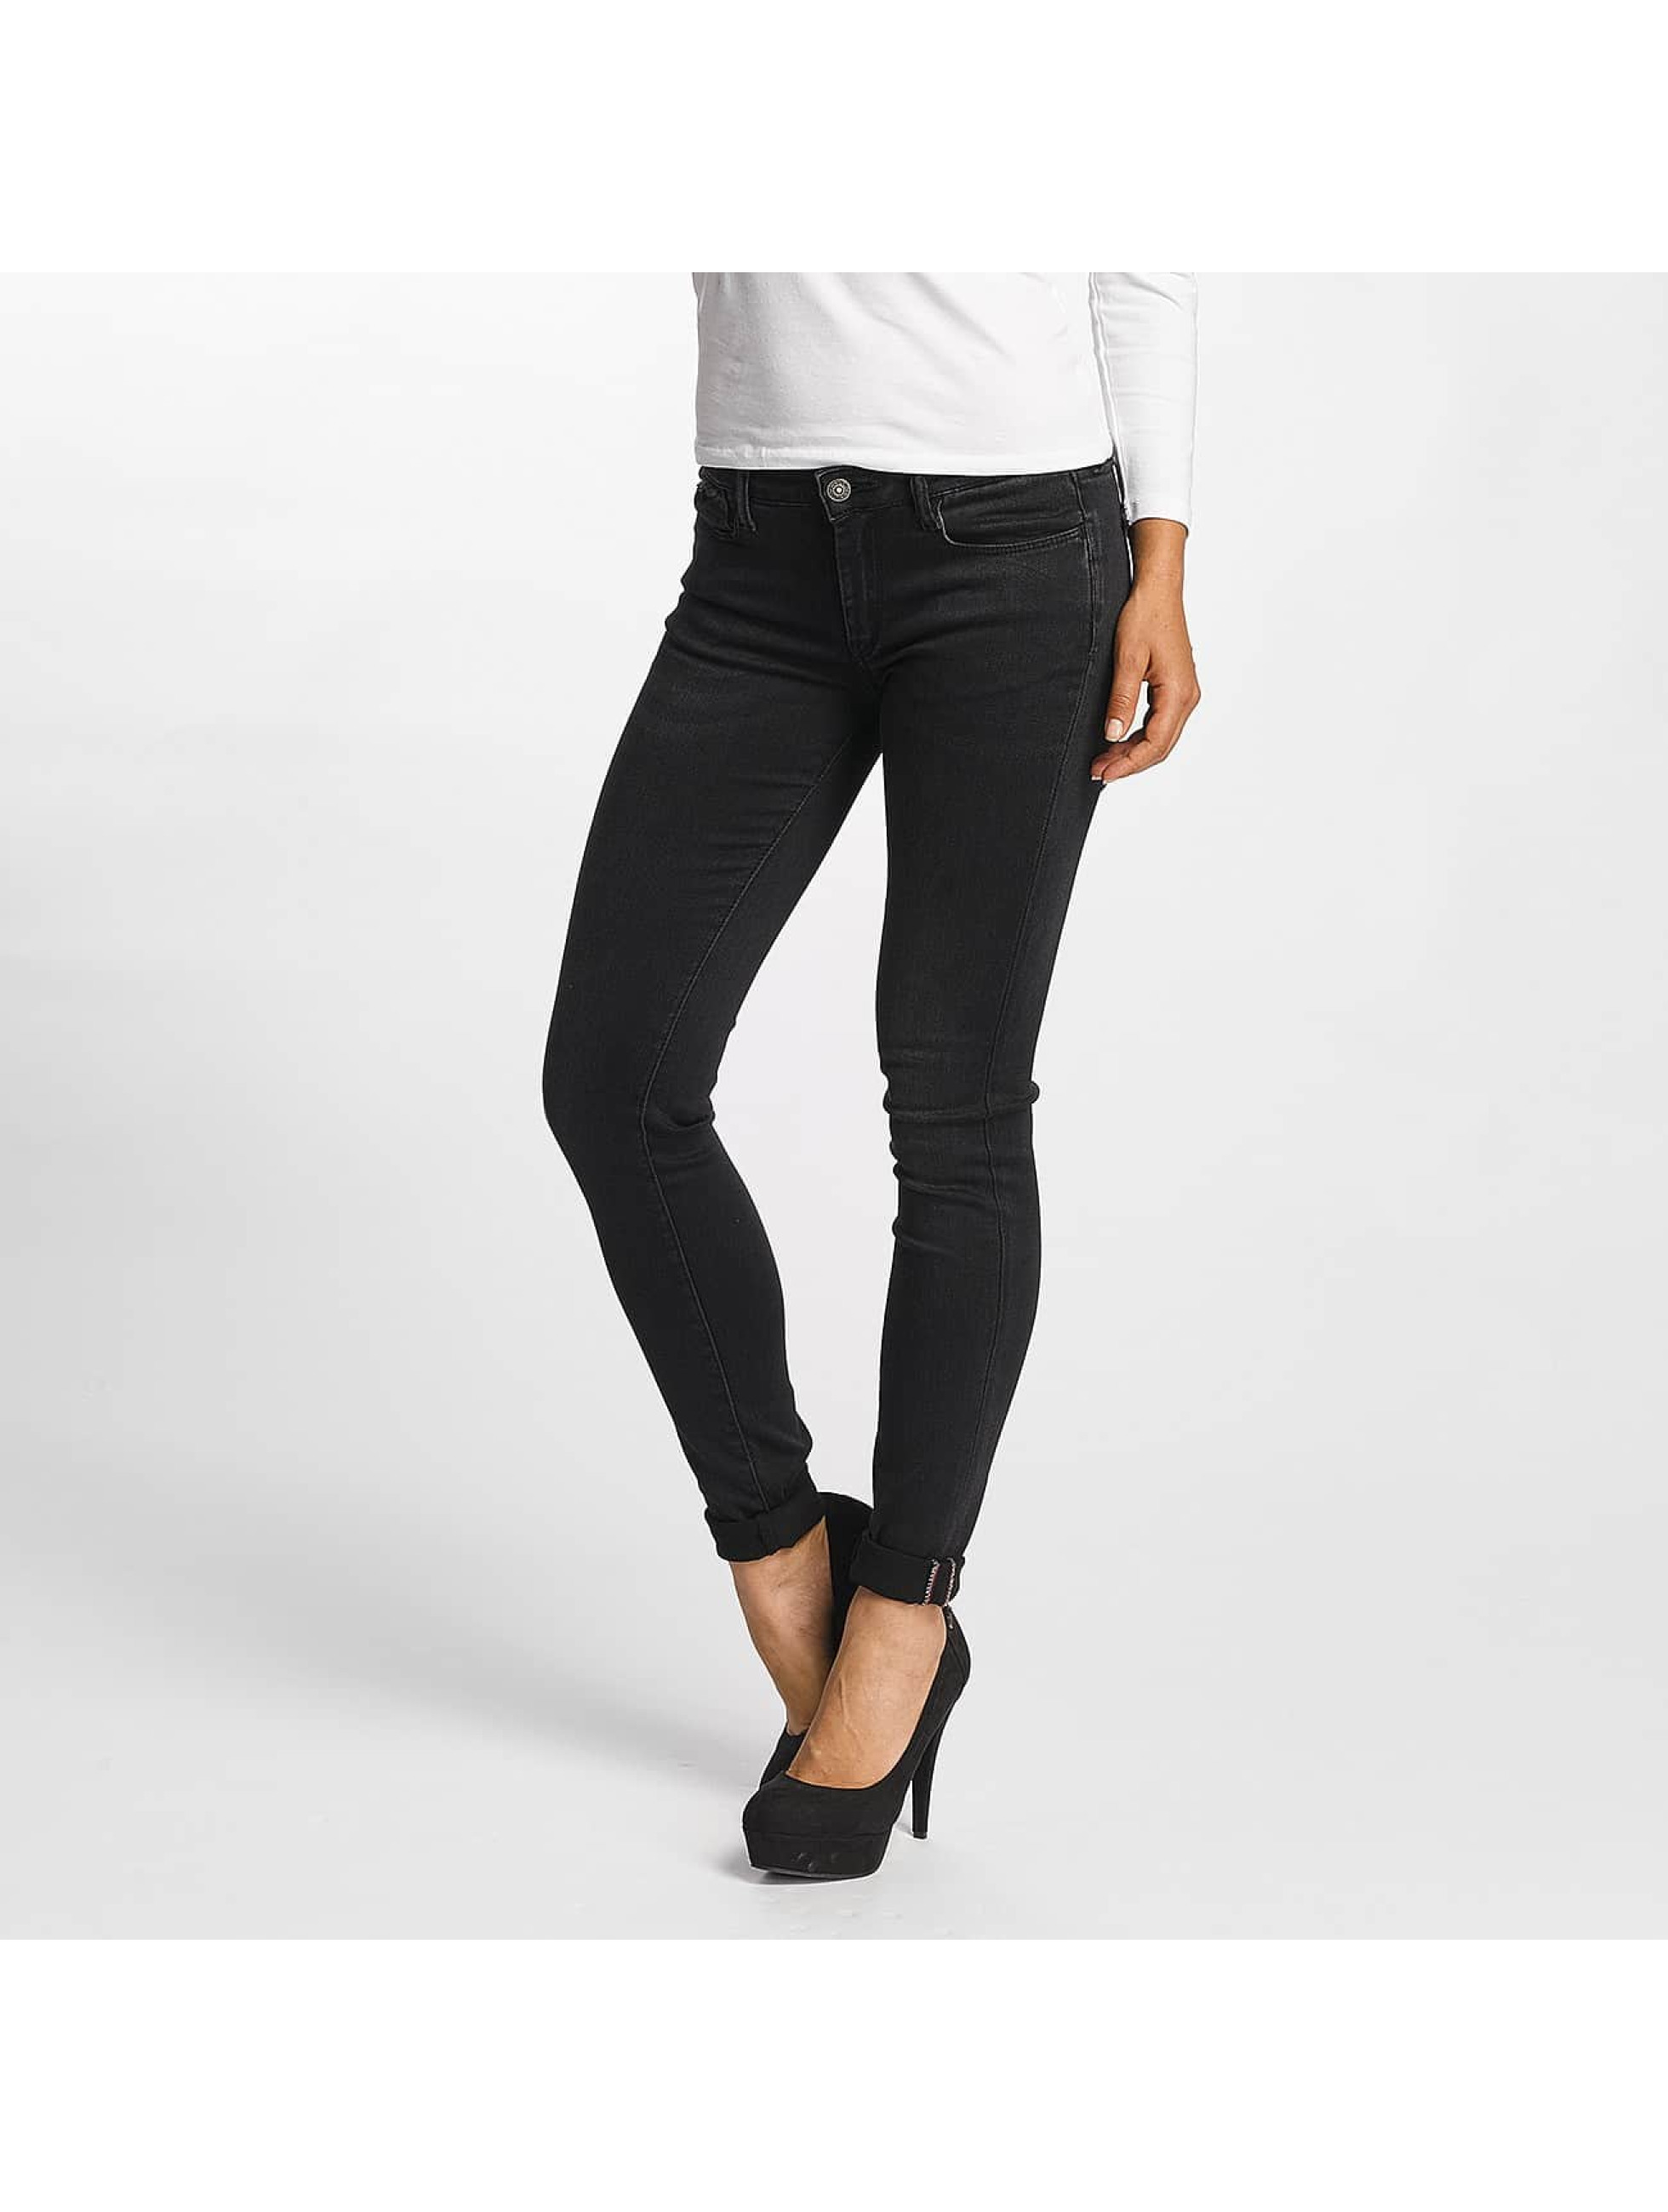 Le Temps Des Cerises Frauen Slim Fit Jeans Ultrapower Slim Fit in schwarz